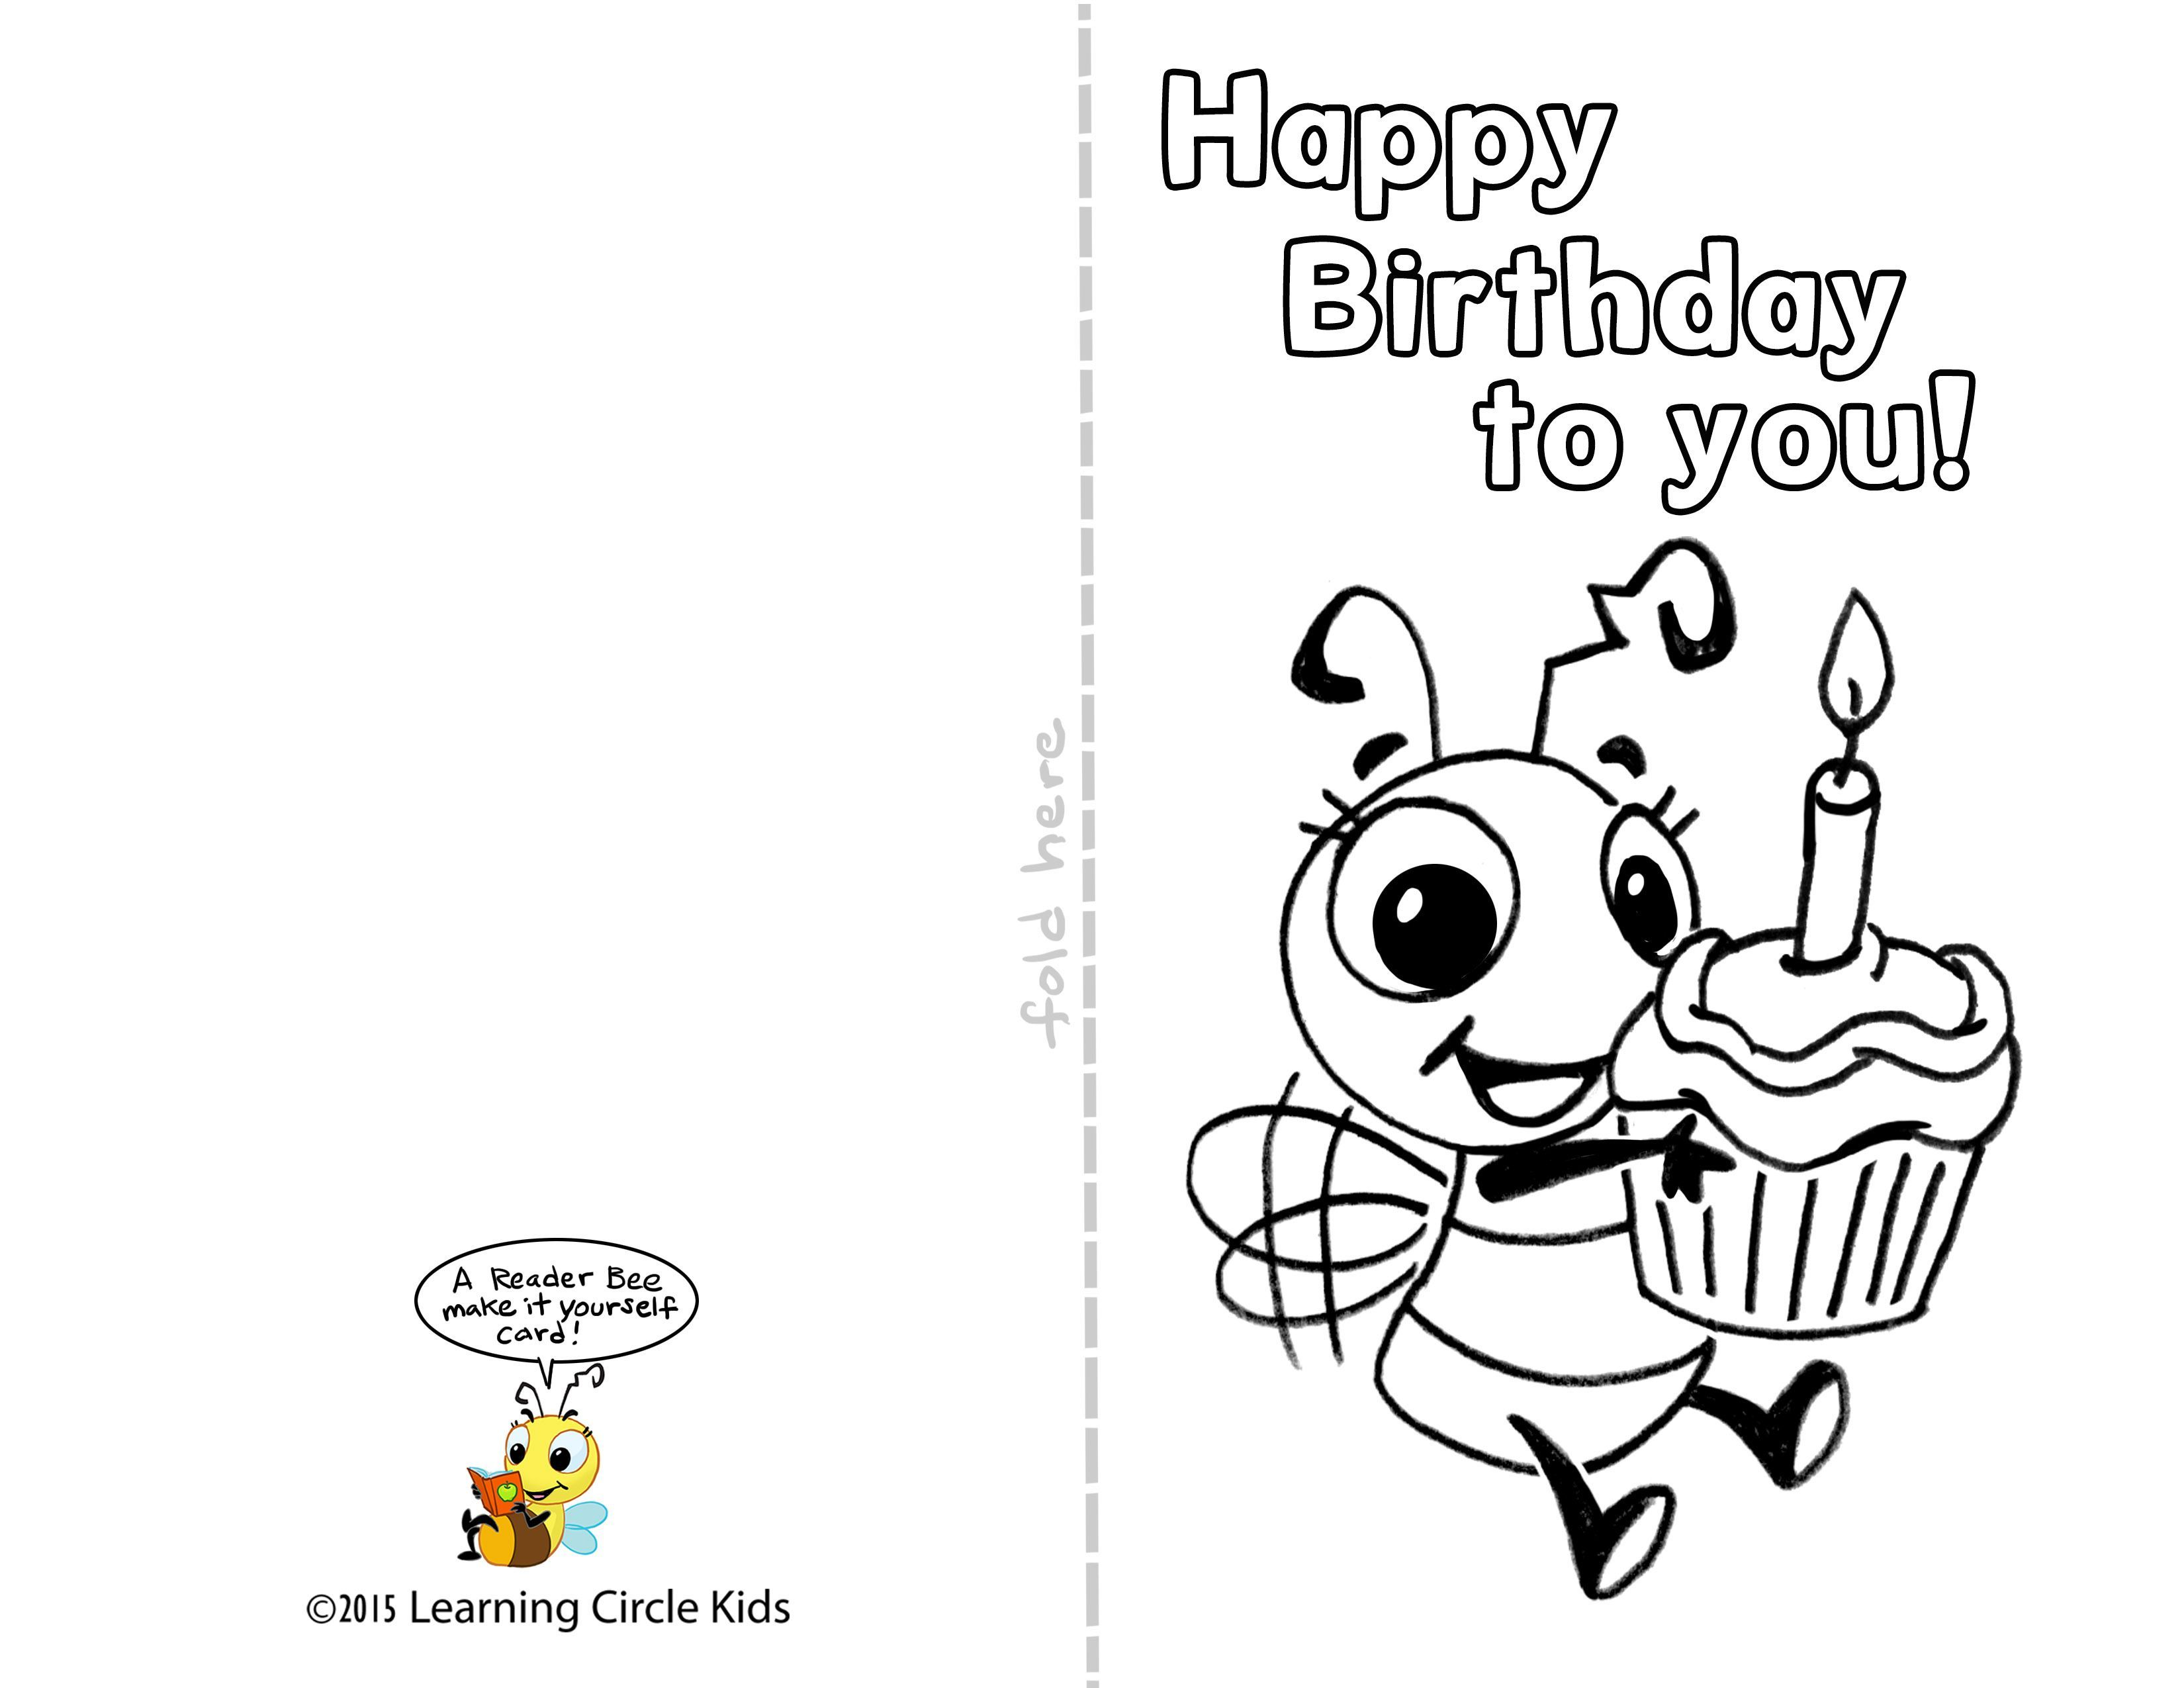 Best Printable Birthday Cards For Kids Happy Birthday Cards Printable Coloring Birthday Cards Birthday Card Template [ 2550 x 3300 Pixel ]